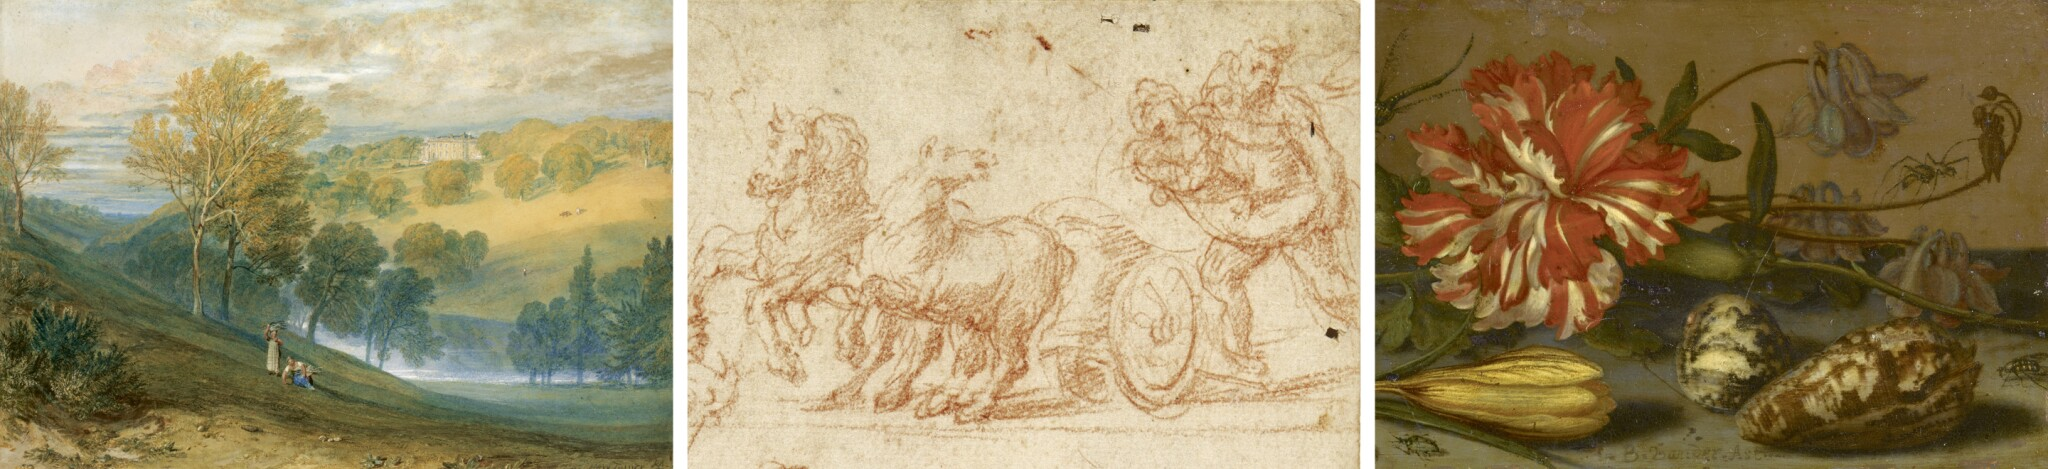 Old Master Day Sale including Old Master Paintings, Drawings and British Works on Paper